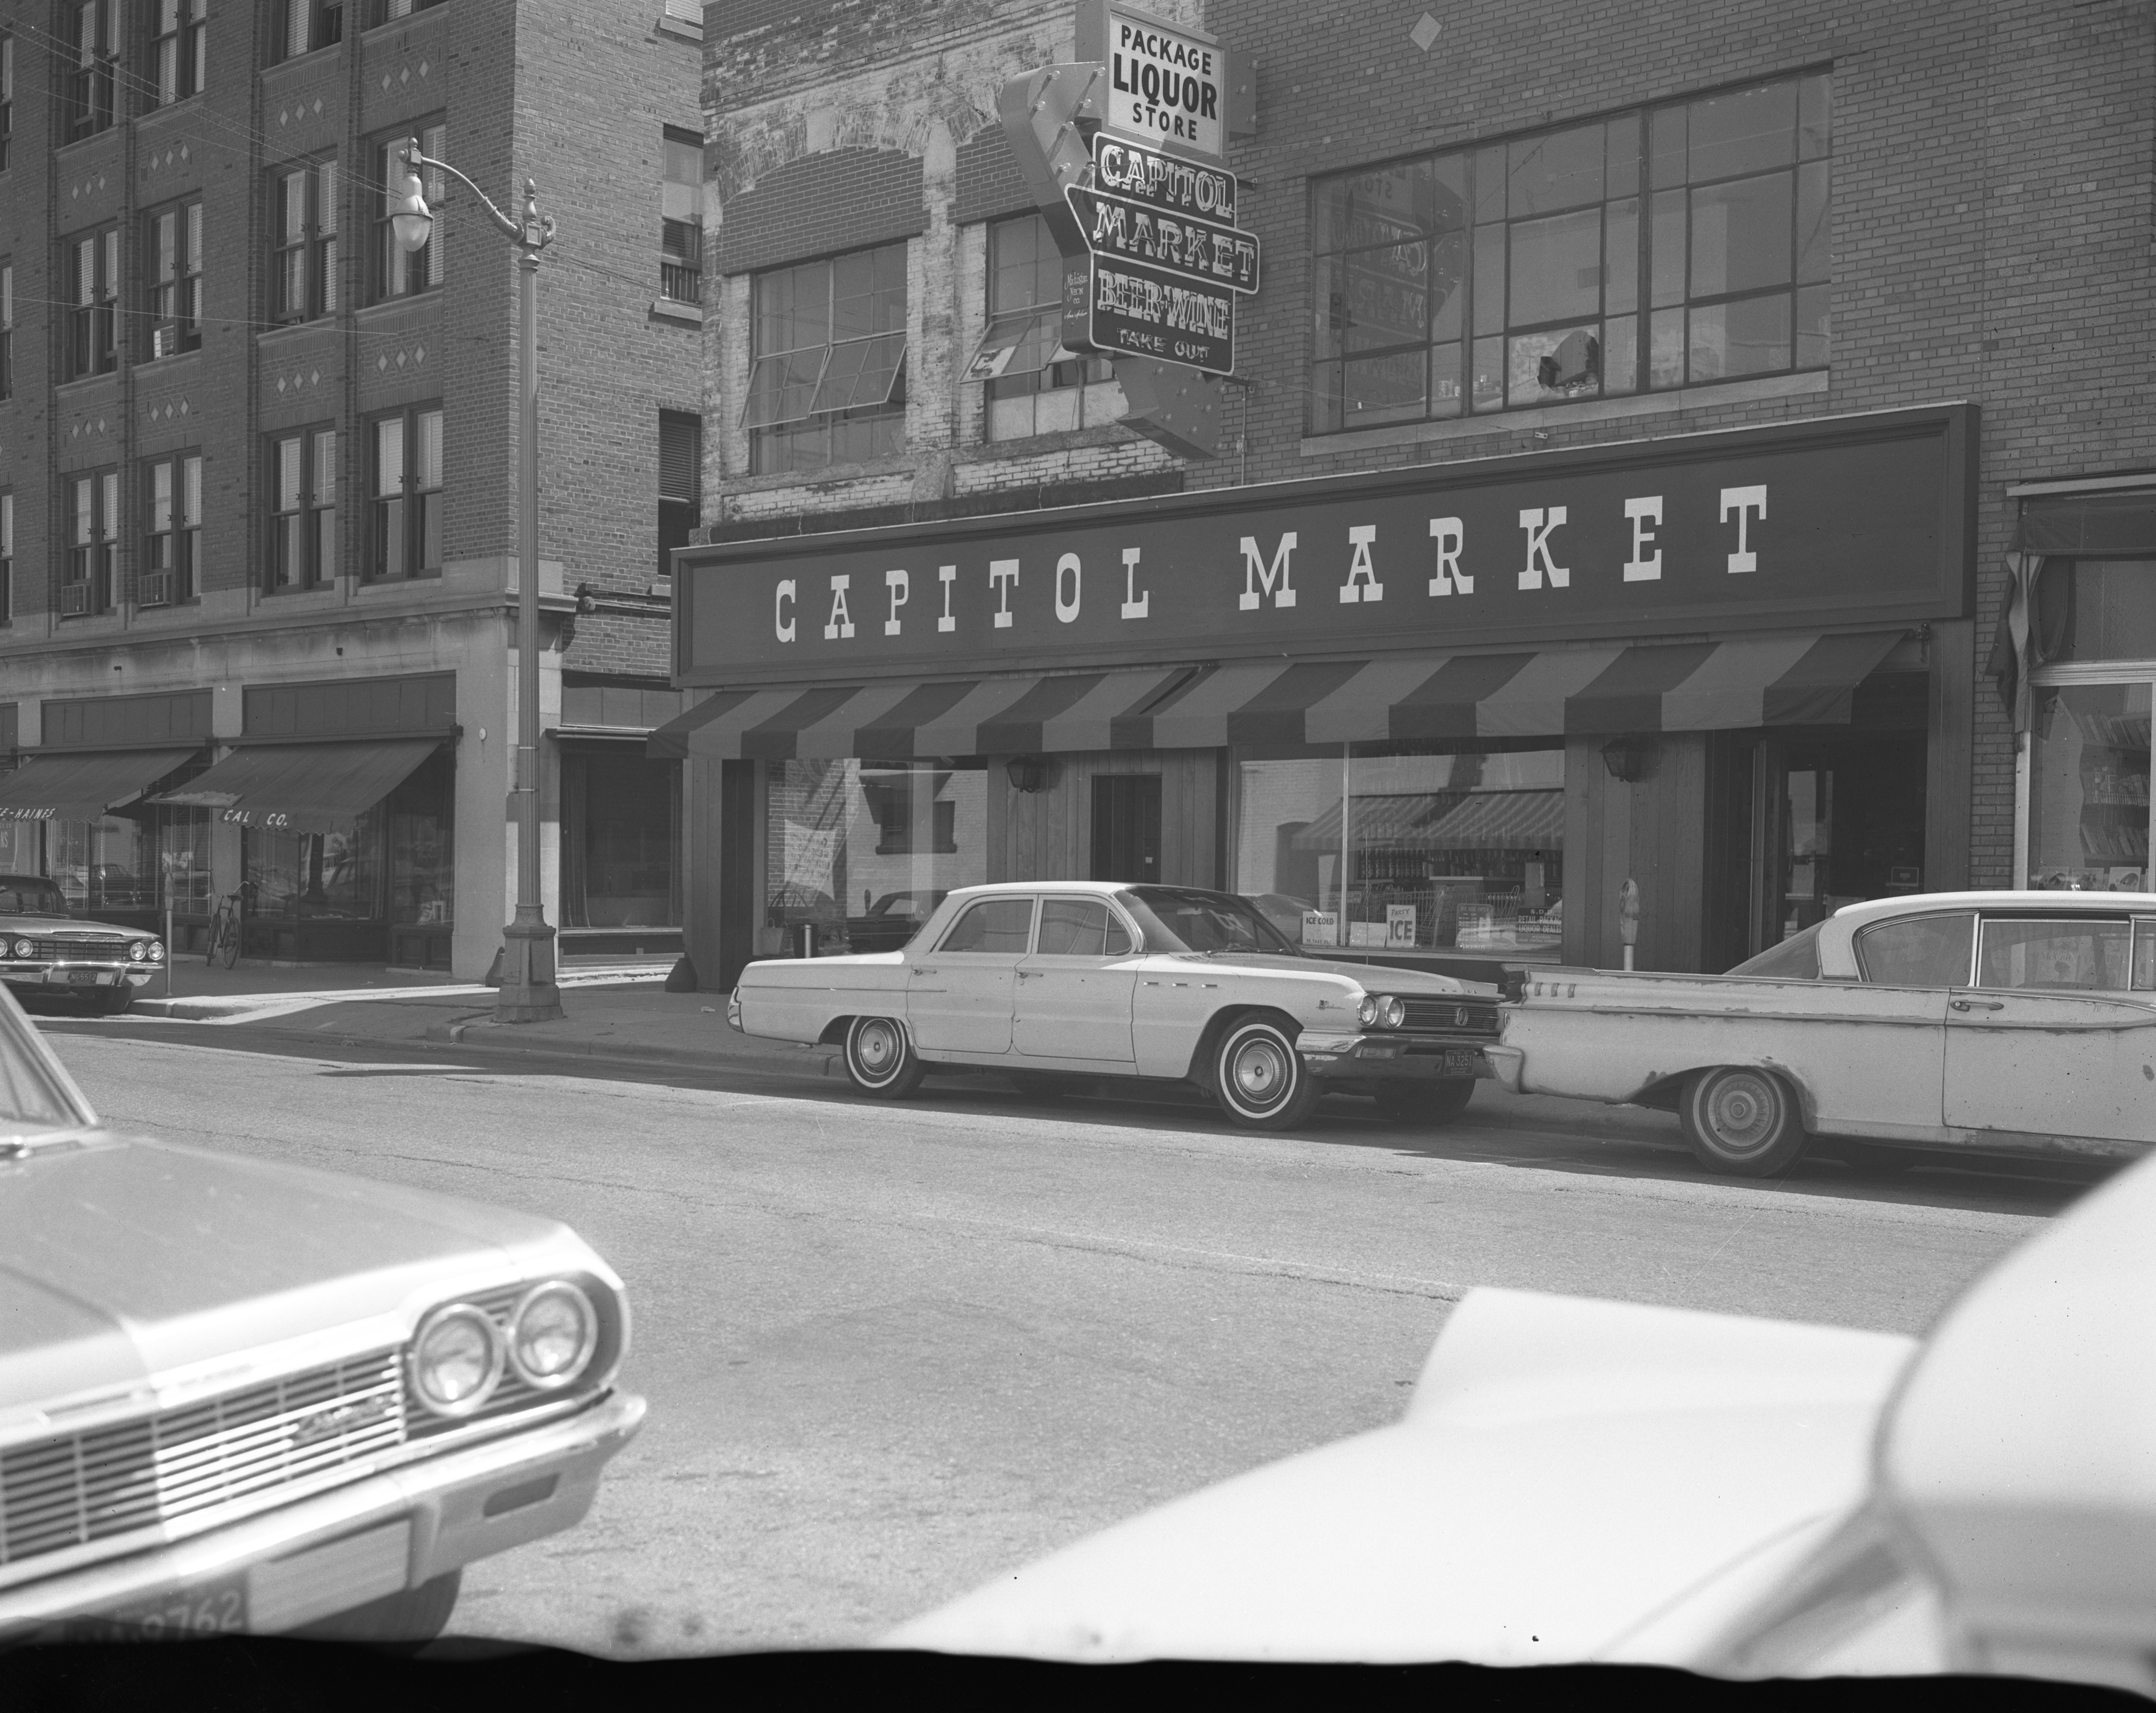 The new Capitol Market, 211 S. Fouth Ave, June 1965 image